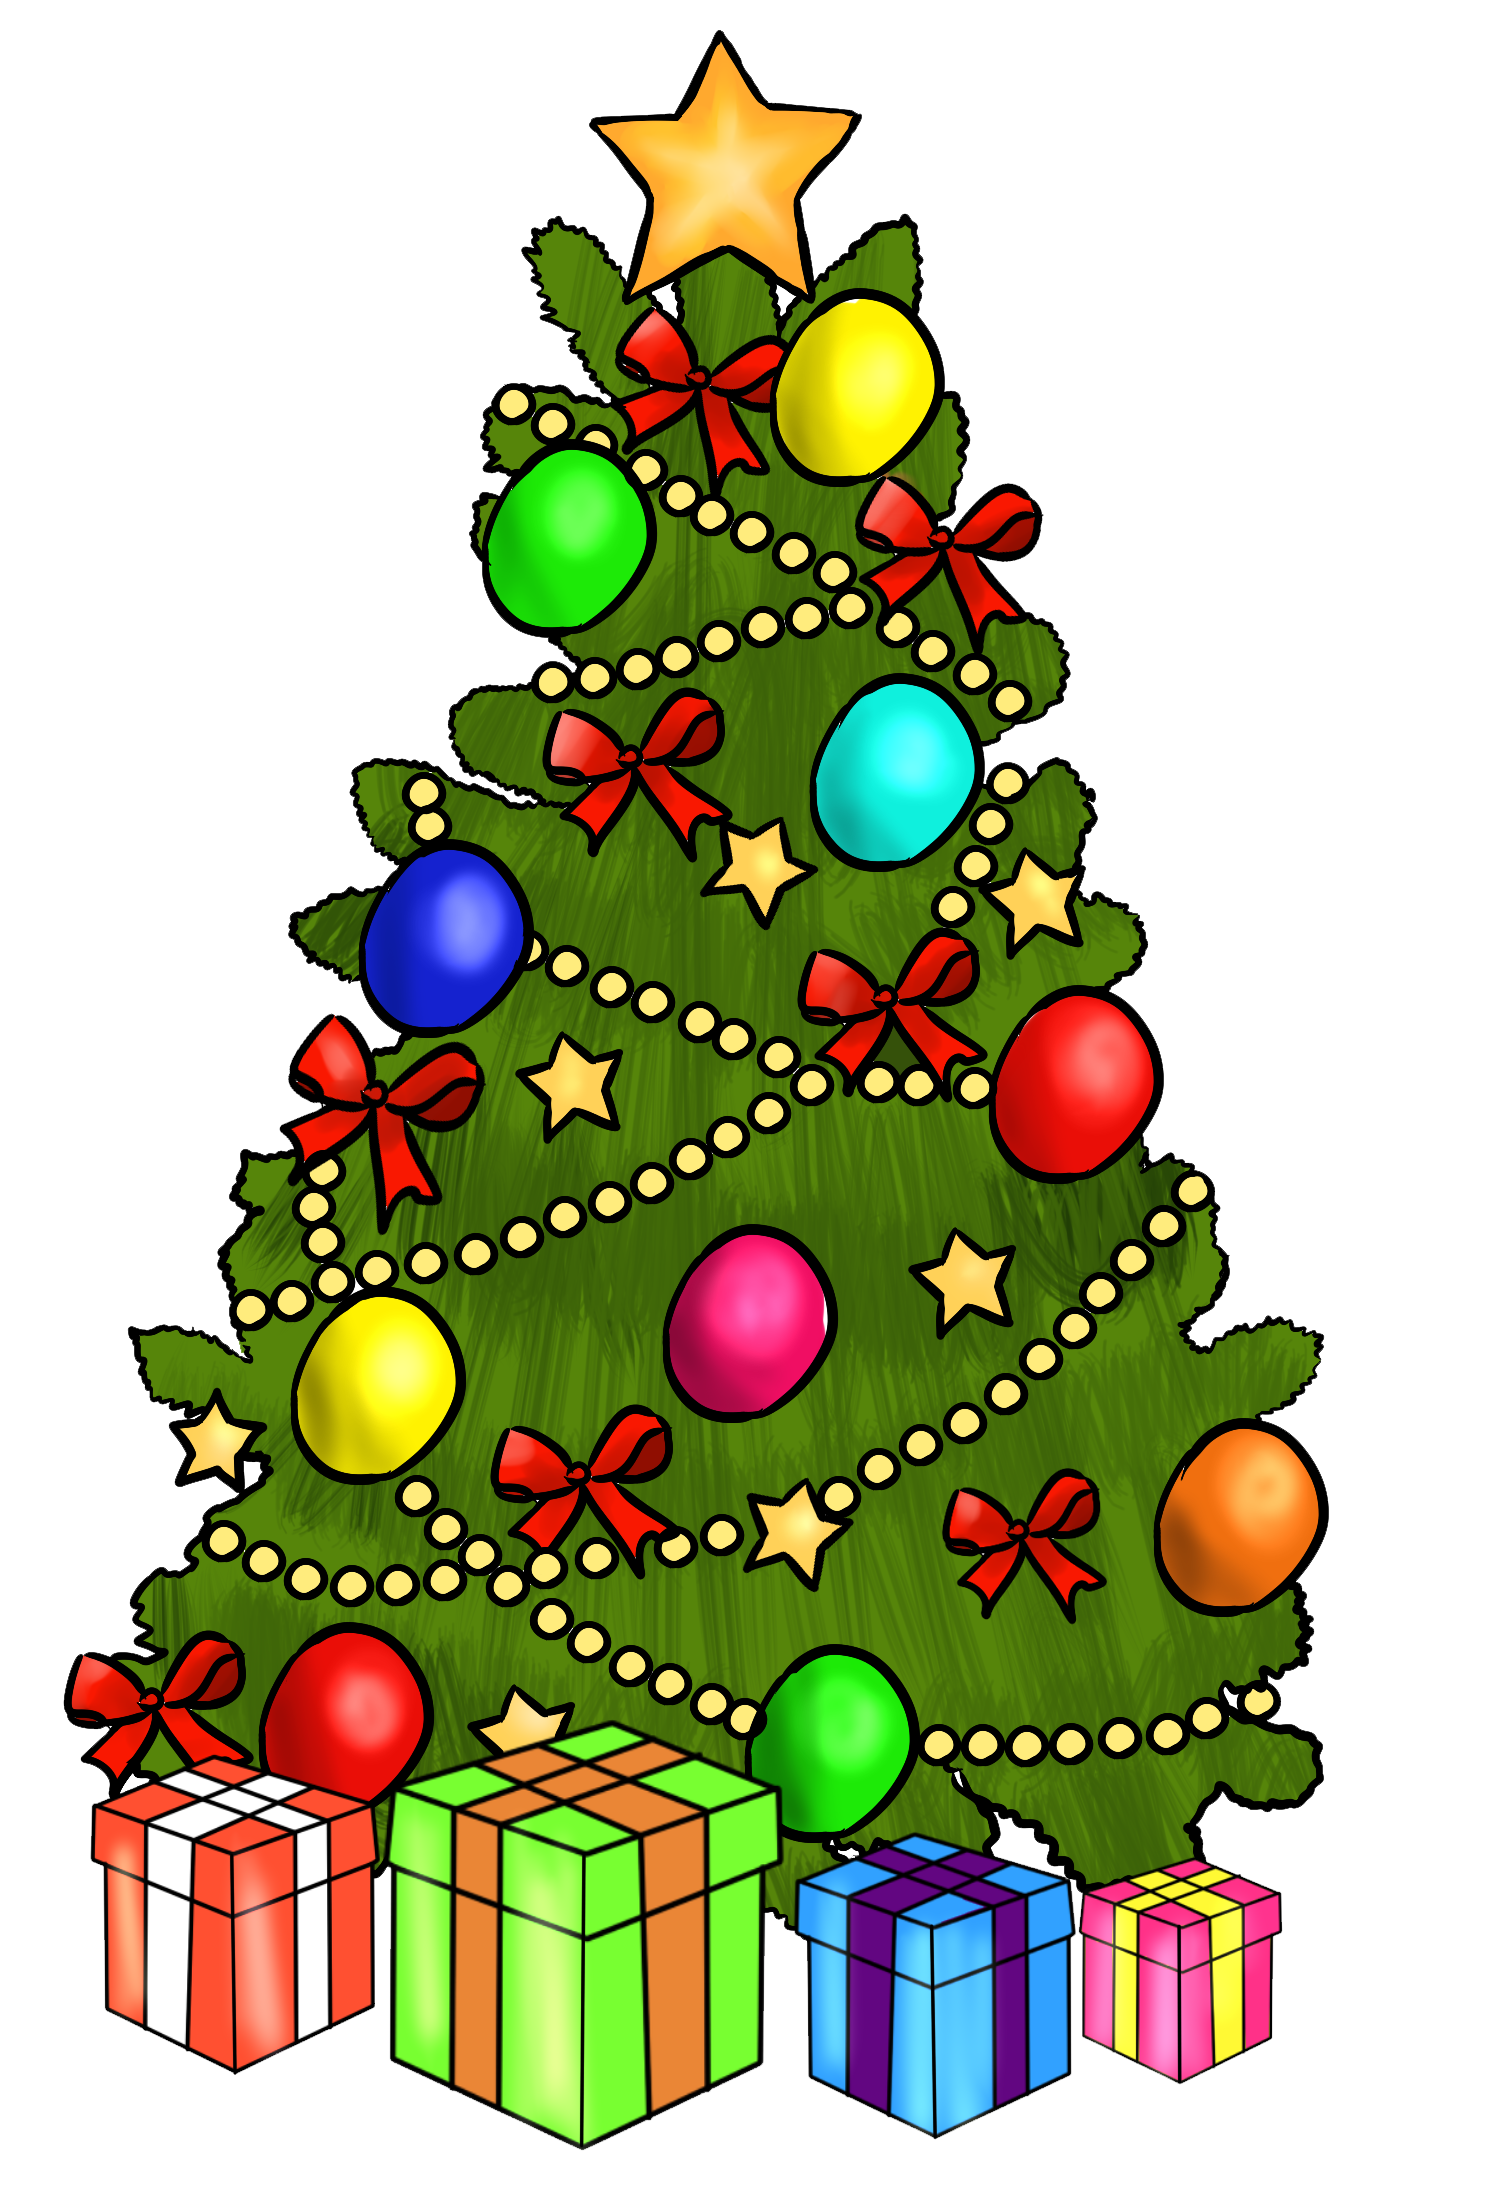 Clip Art Christmas Cliparts christmas pictures clipart kid clipartlord com exclusive this beautiful tree with presents